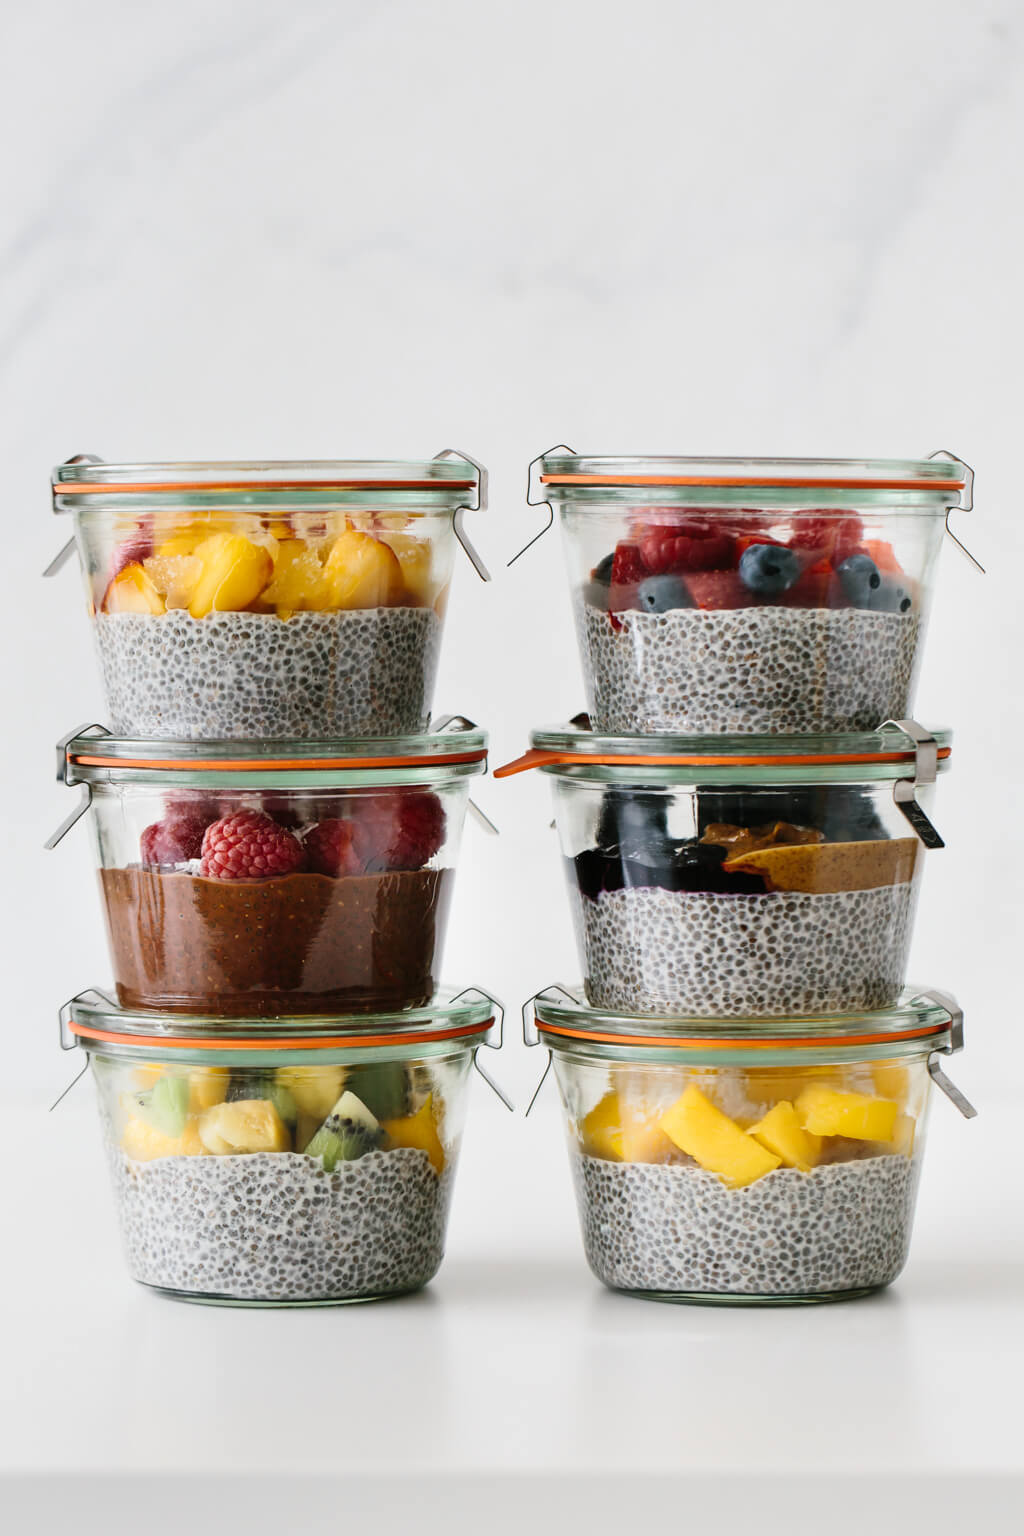 Chia pudding meal prepped into glass containers.